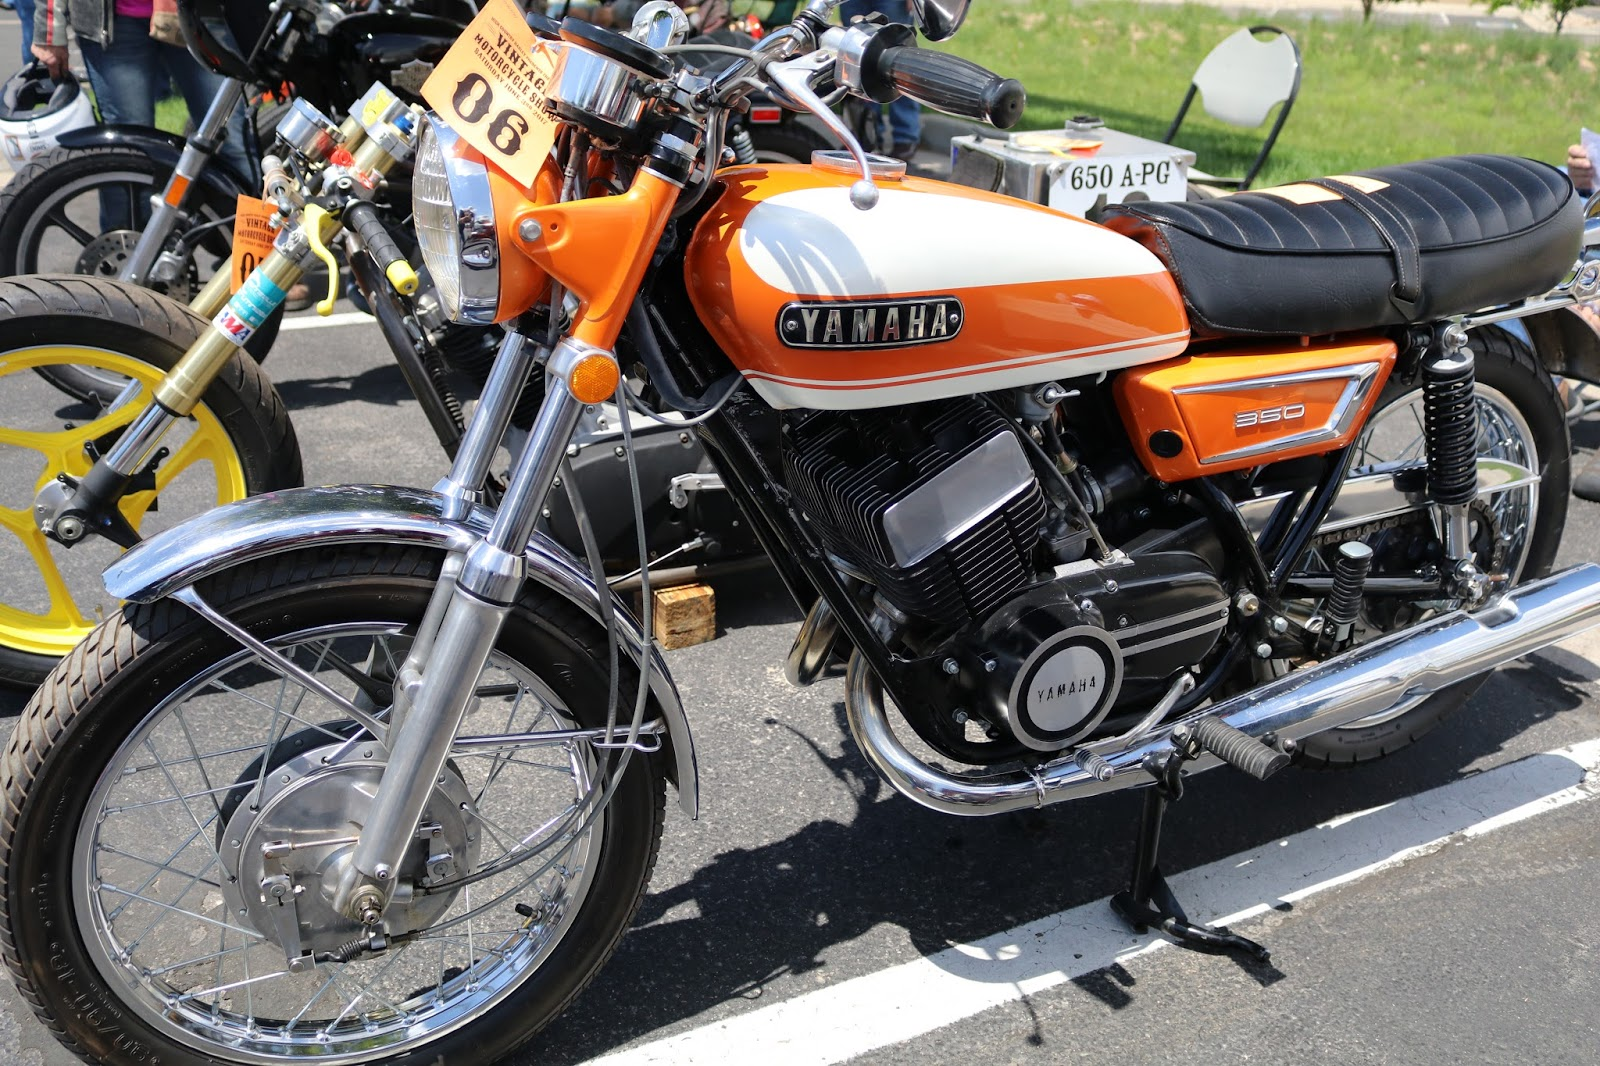 hight resolution of 1972 yamaha r5 on display at the 2017 vintage motorcycle show frederick co